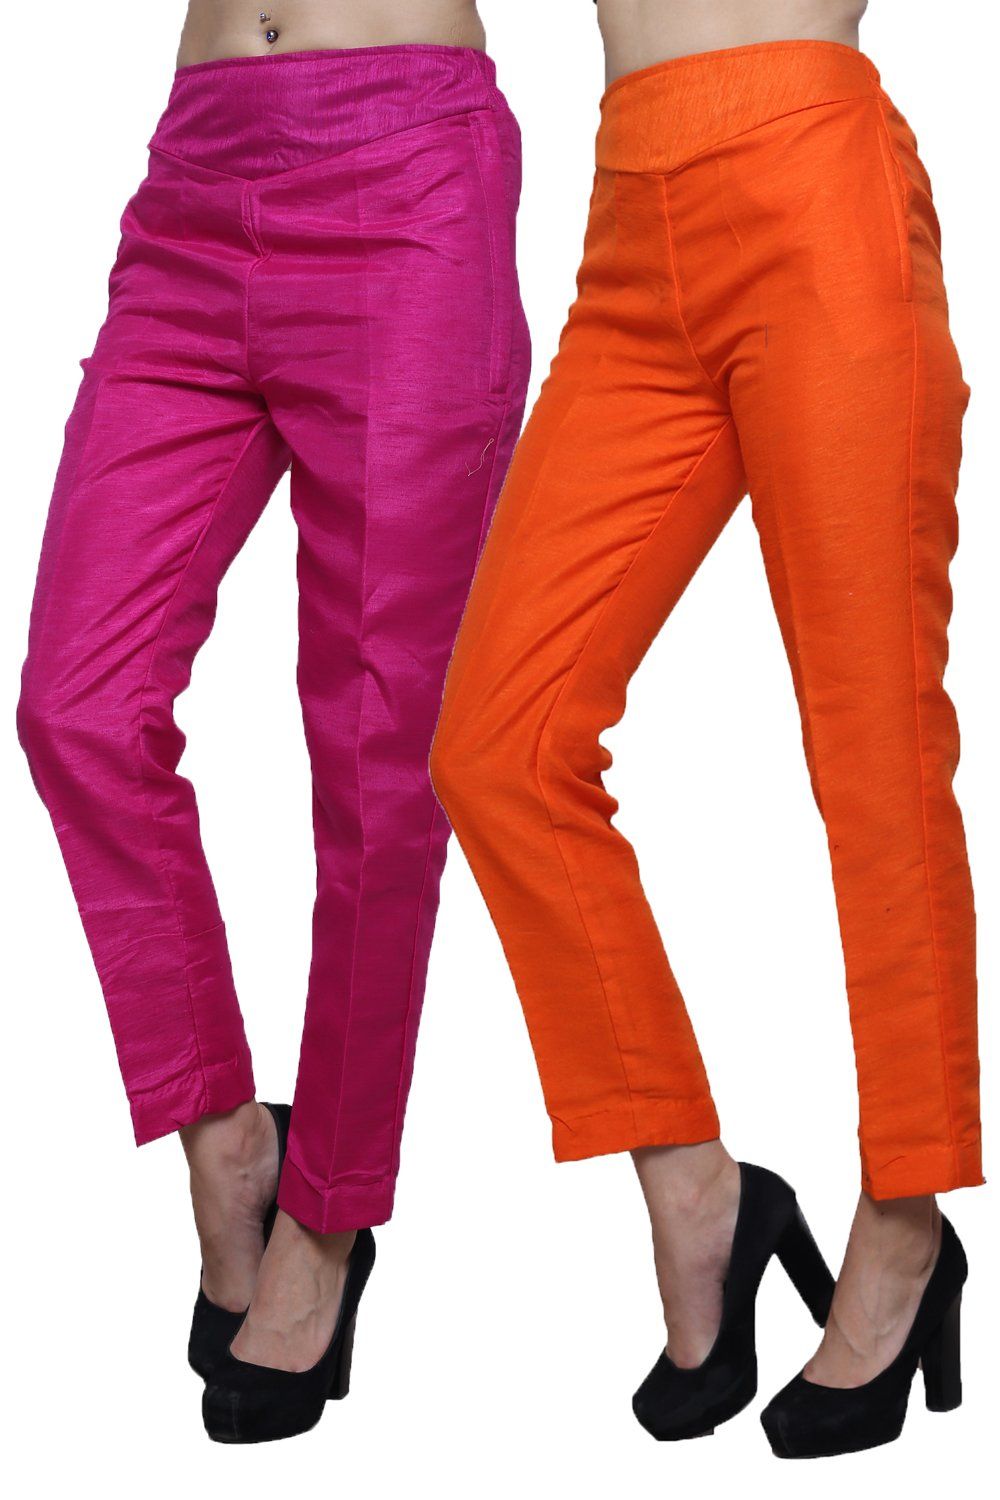 Castle Pack of 2 Raw Silk Pencil Pants